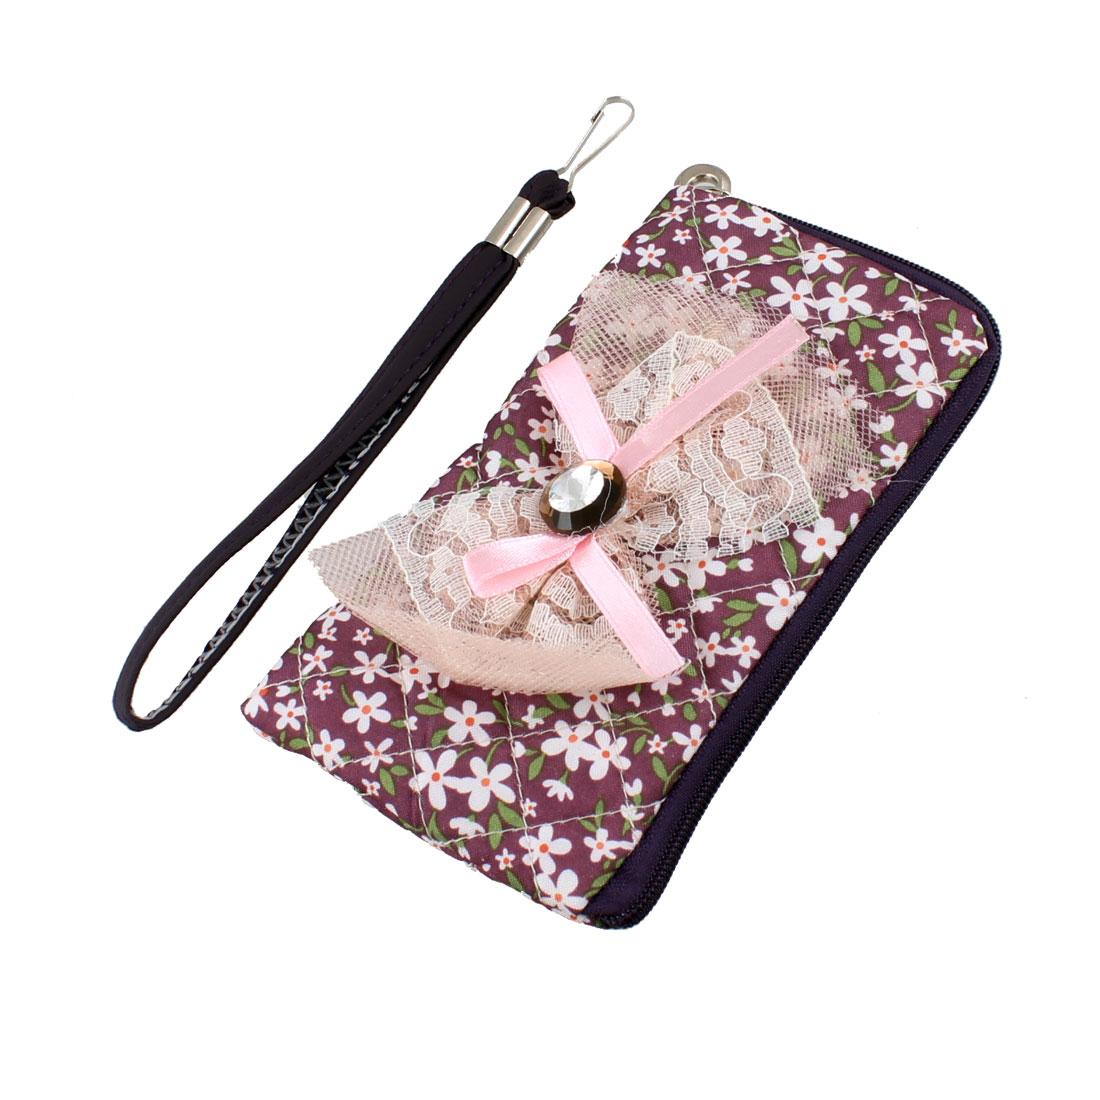 Purple Zip up Bowtie Decor Phone Purse Bag Holder for Cell Phone Mp3 Mp4